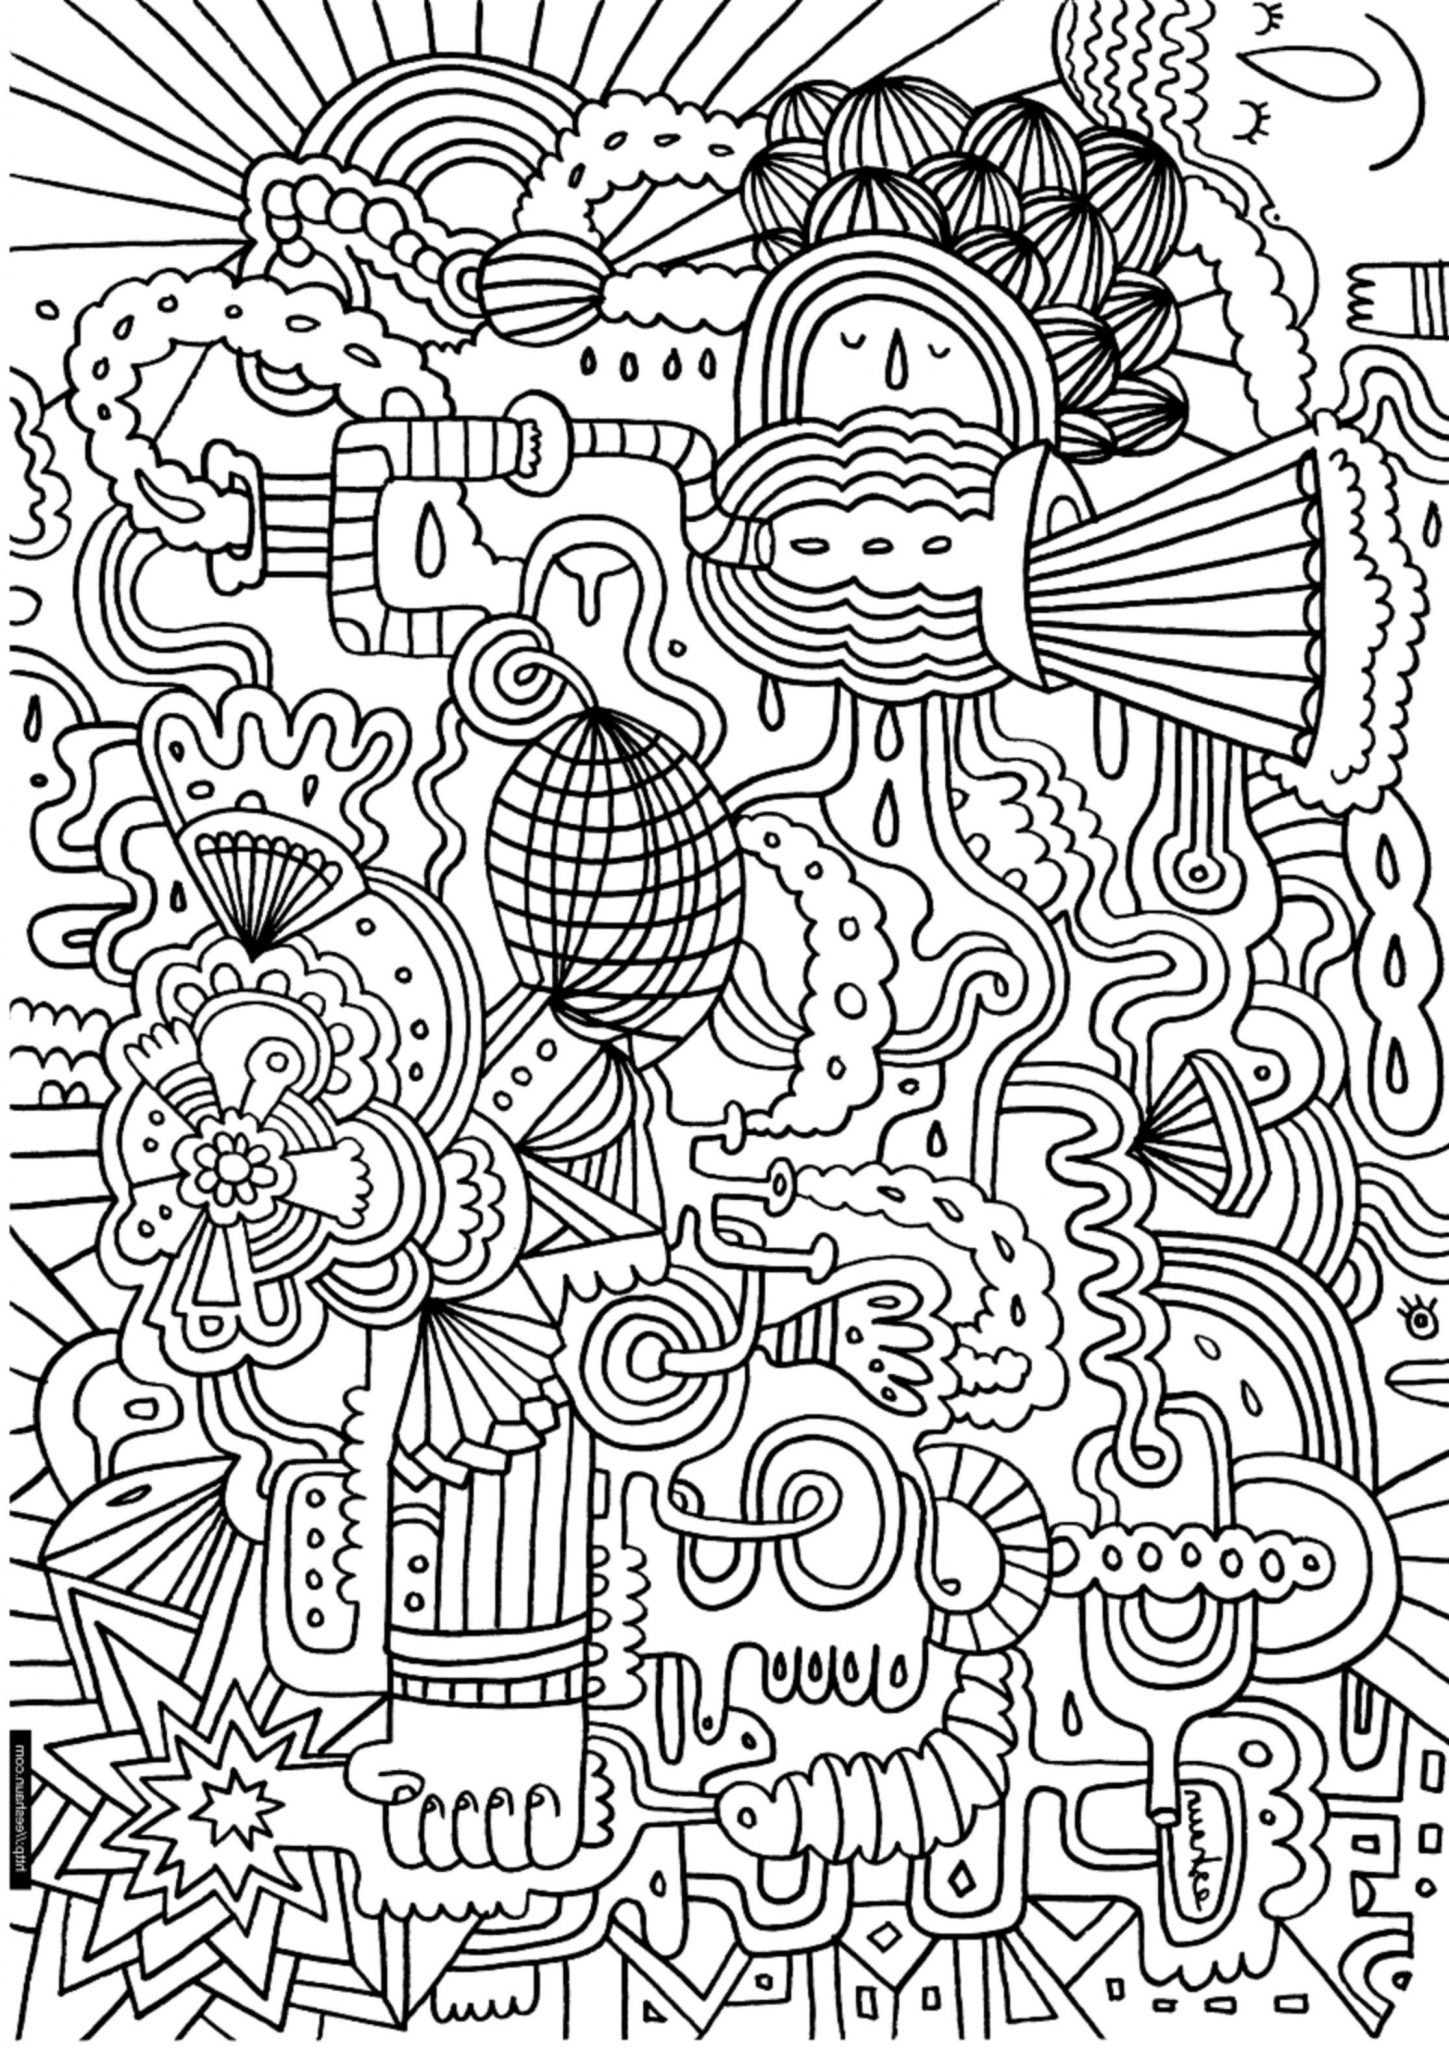 Print Amp Download Complex Coloring Pages For Kids And Adults